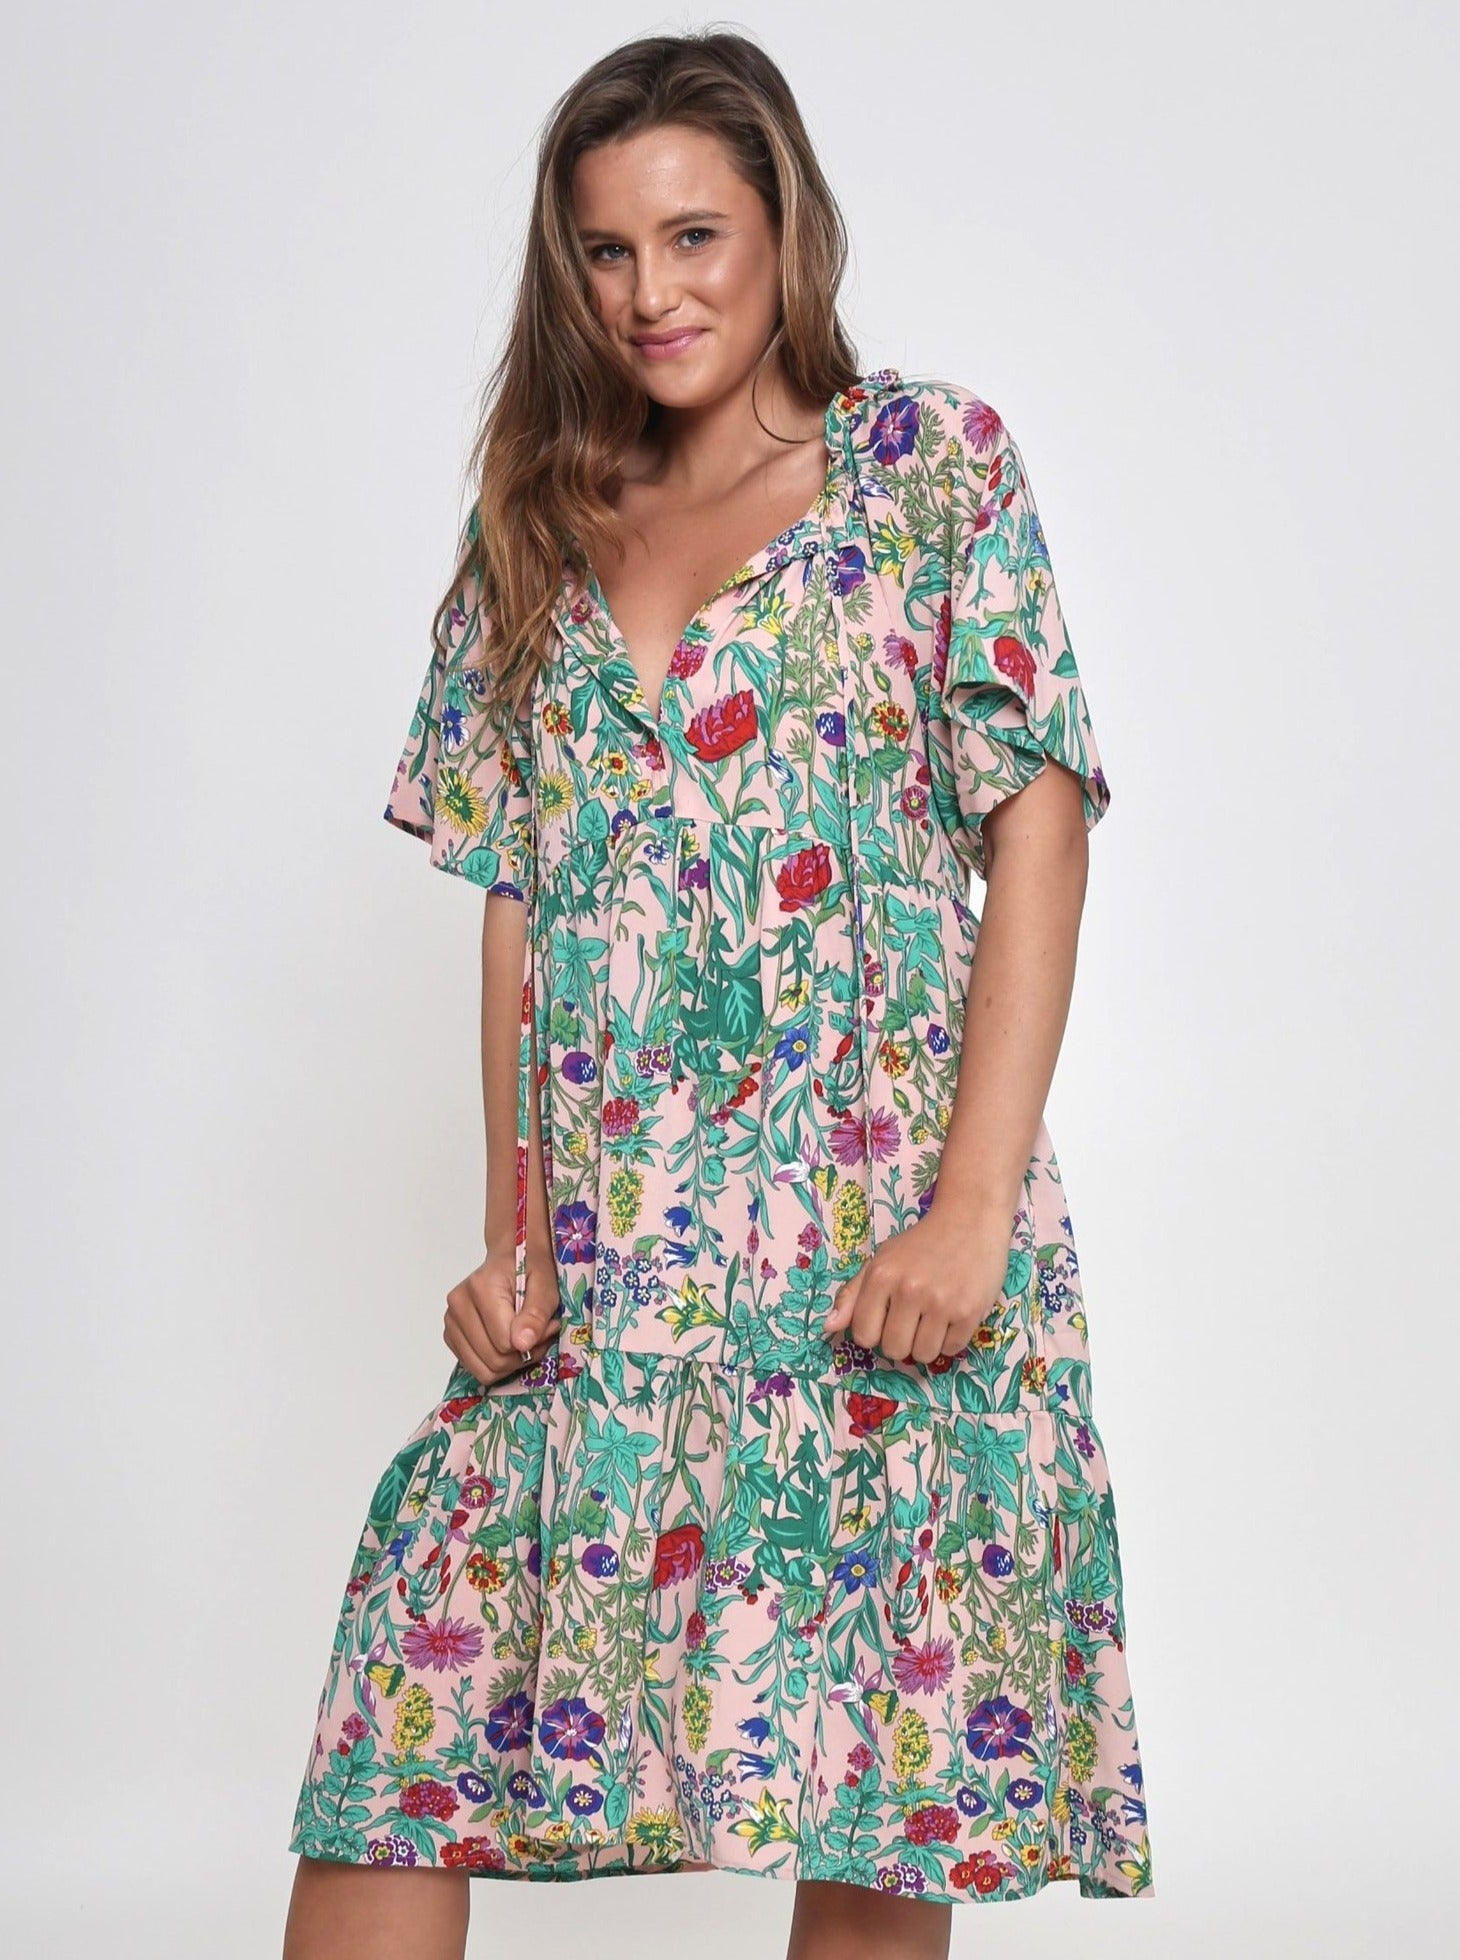 Maddie Floral Knee Length Dress - Green Floral